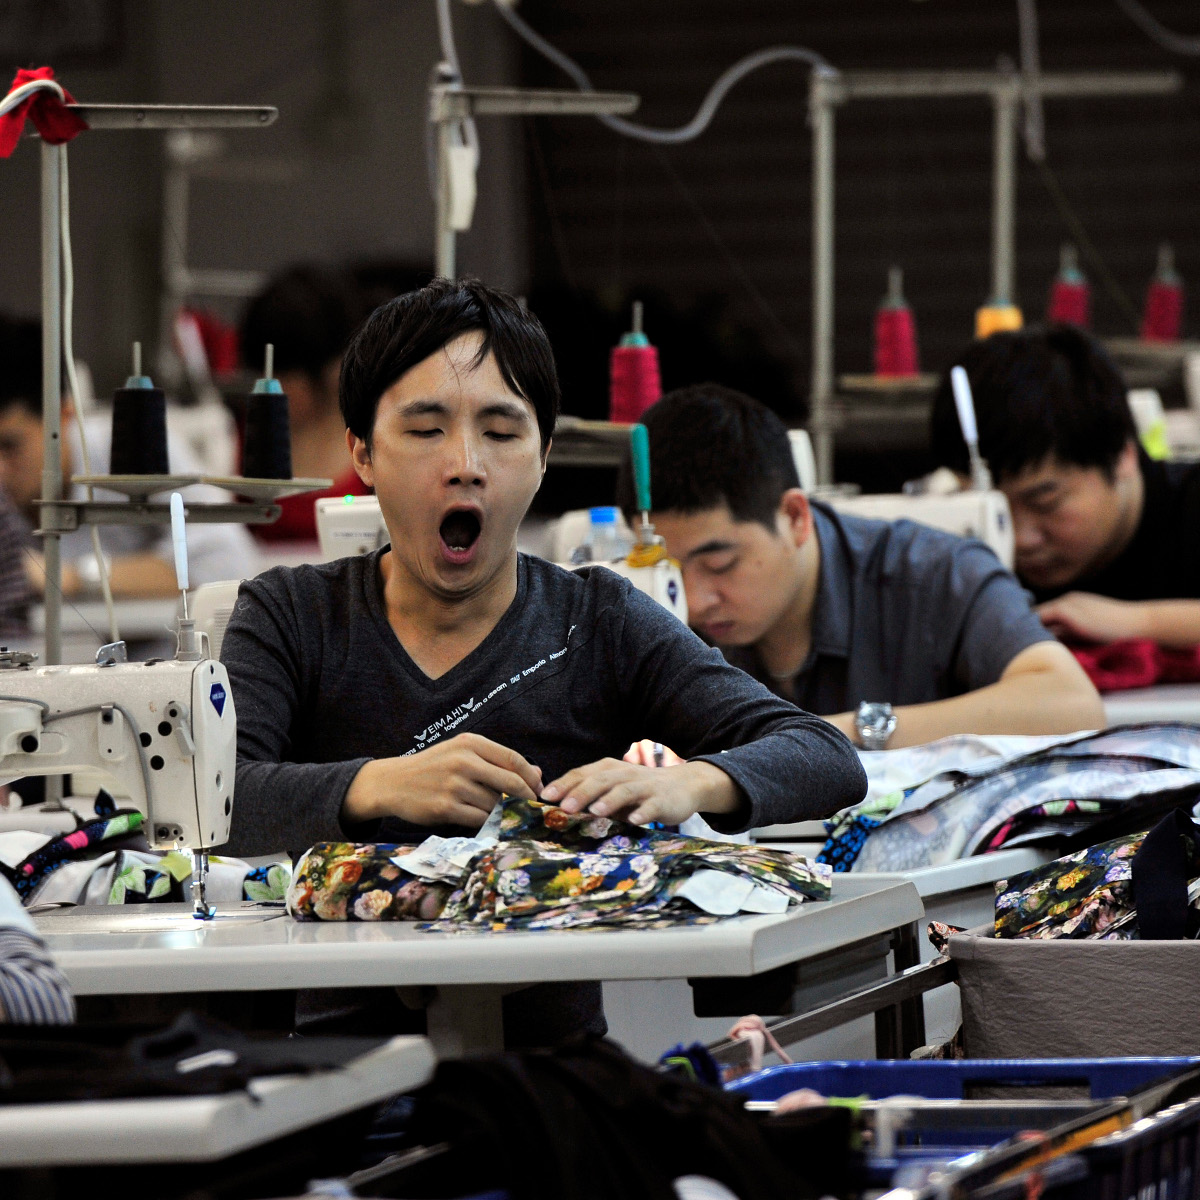 An employee yawns as he works at a garment factory in Humen township, Guangdong province November 24, 2013. Activity in China's vast factory sector grew at a milder pace in November as new export orders shrank, a preliminary survey showed on Thursday, bolstering expectations the economy could lose some of its vigour in the fourth quarter as Beijing shifts its focus to structural reform. Picture taken November 24, 2013.